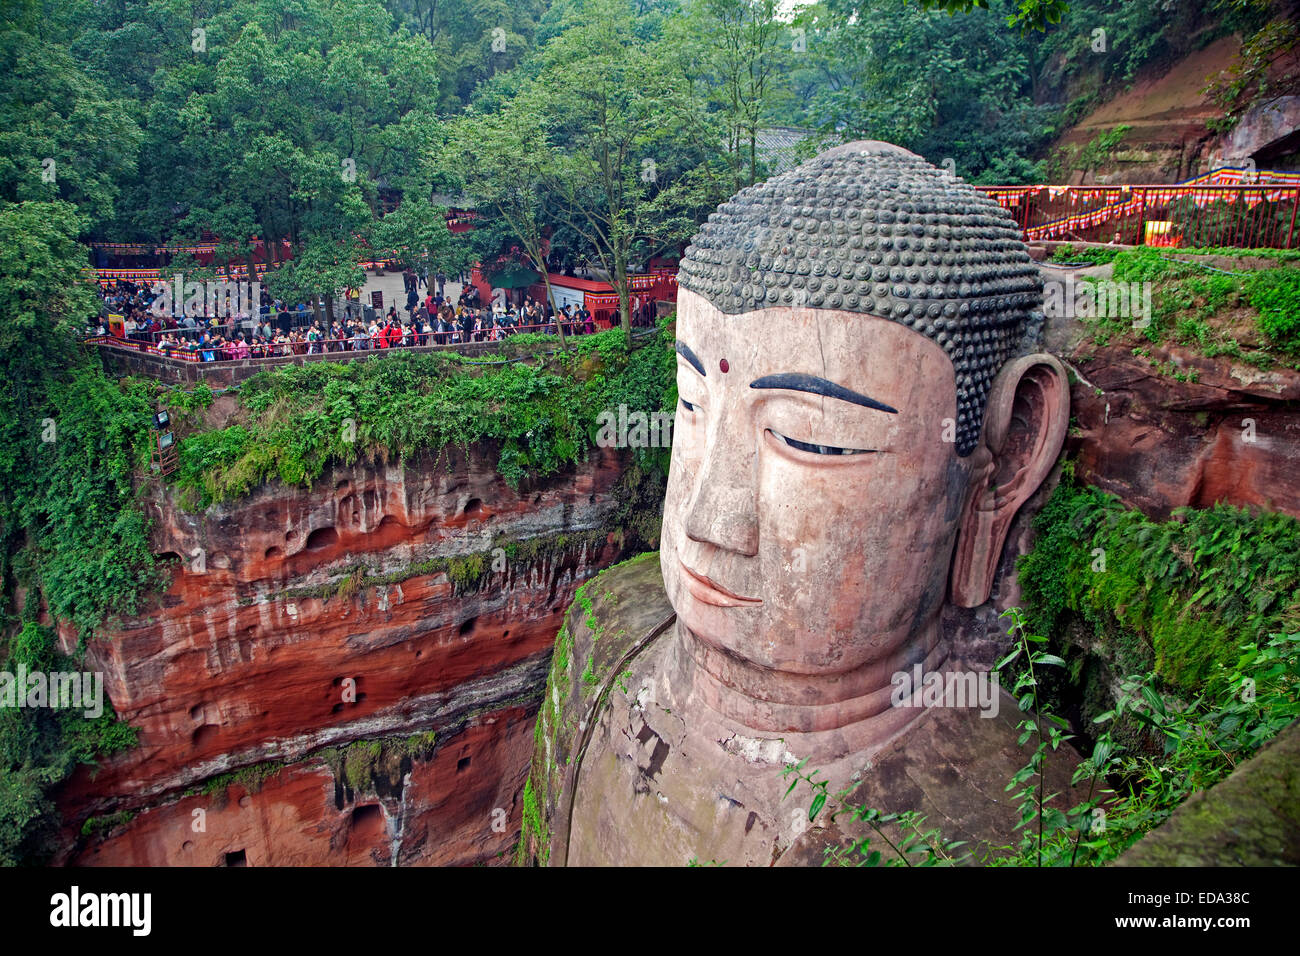 The Leshan Giant Buddha, largest stone-carved Buddha statue in the world from the Tang Dynasty, Sichuan province, China Stock Photo